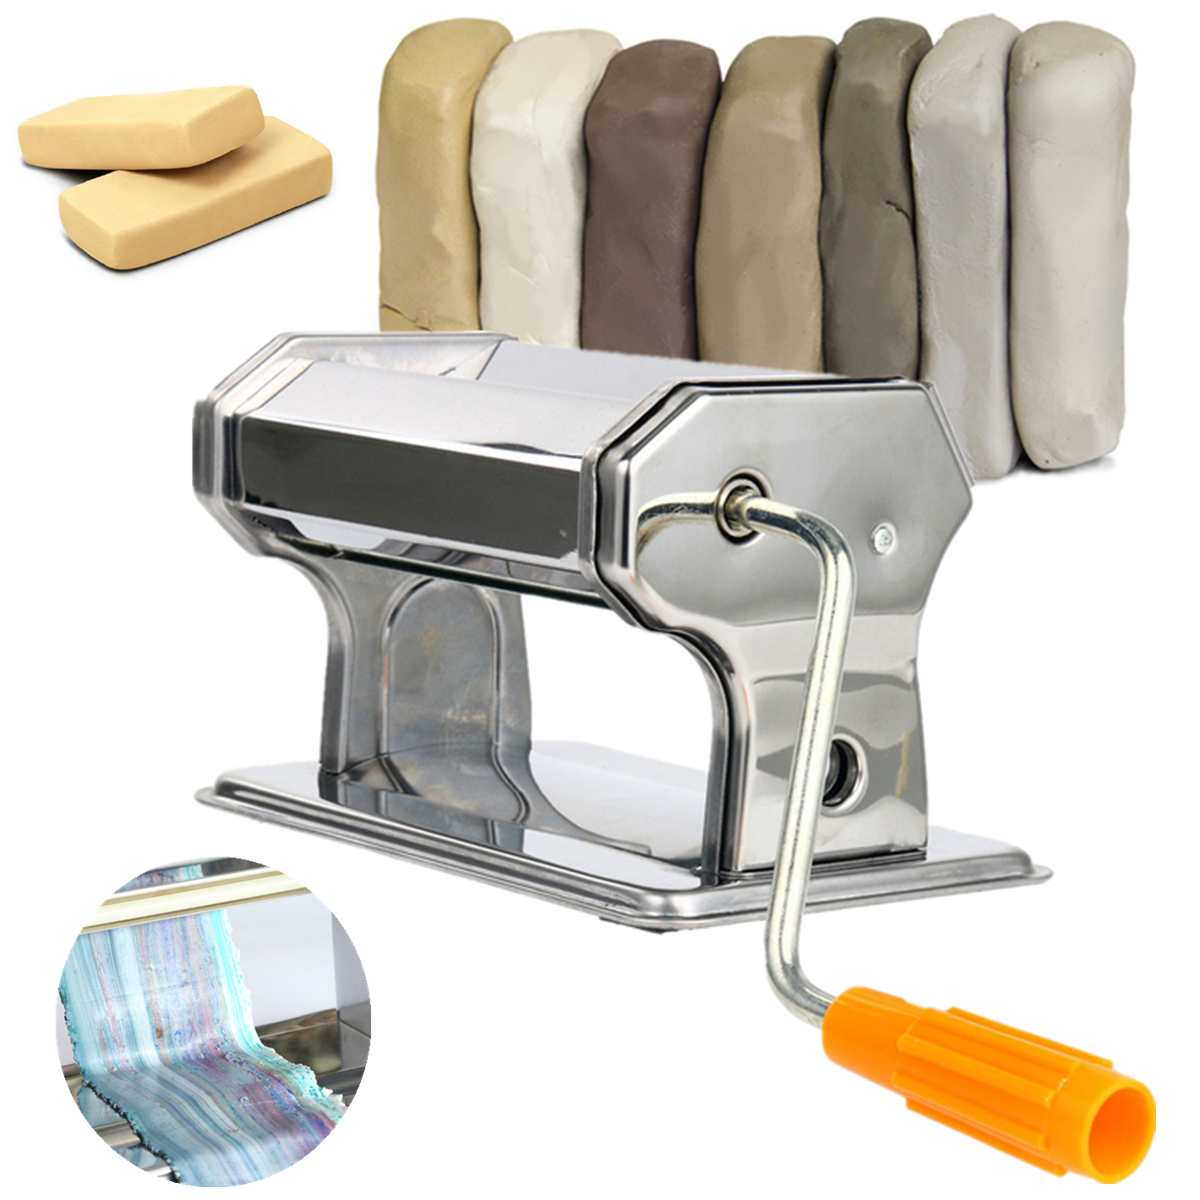 Portable Stainless Steel Craft Polymer Clay Rolling Machine Press Roller Hand Cranked Handmade Press Pasta Tools Non Electric|Pottery & Ceramics Tools| |  - title=